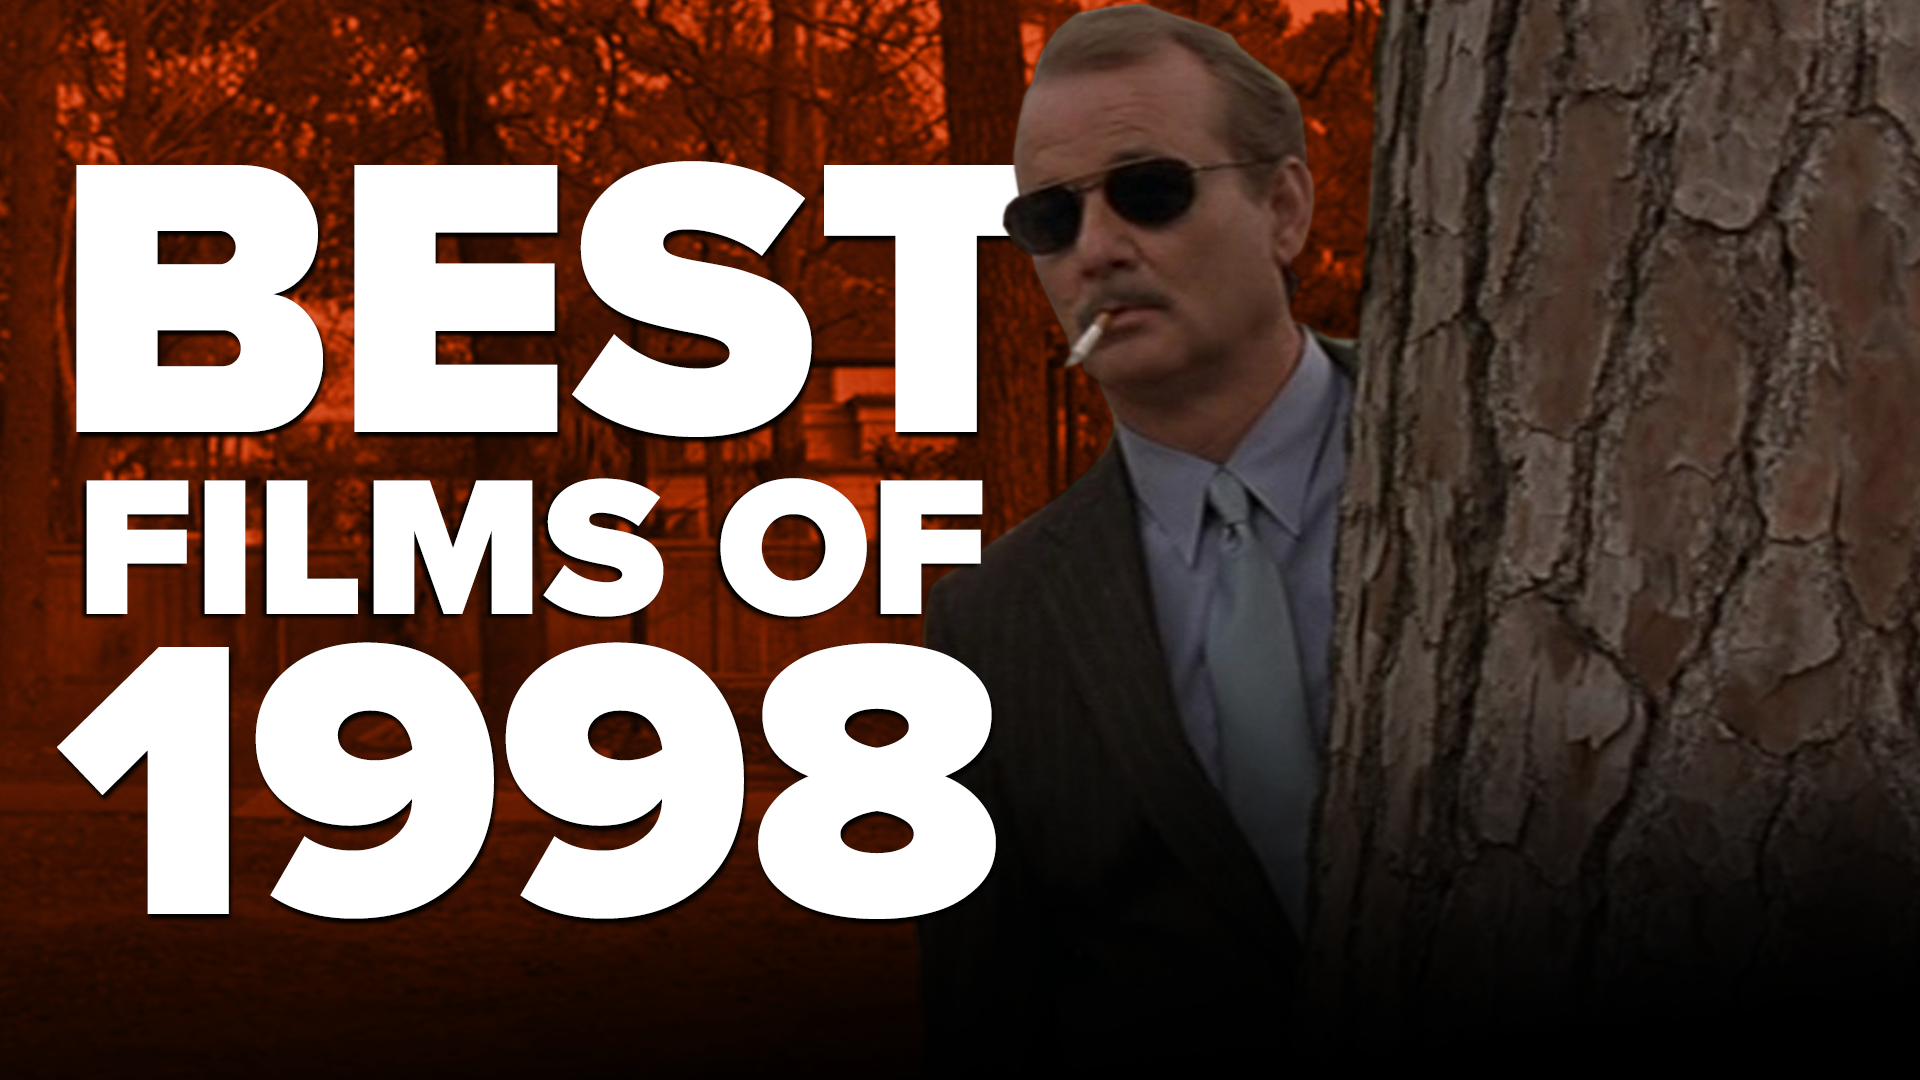 These are the top 10 films of 1998